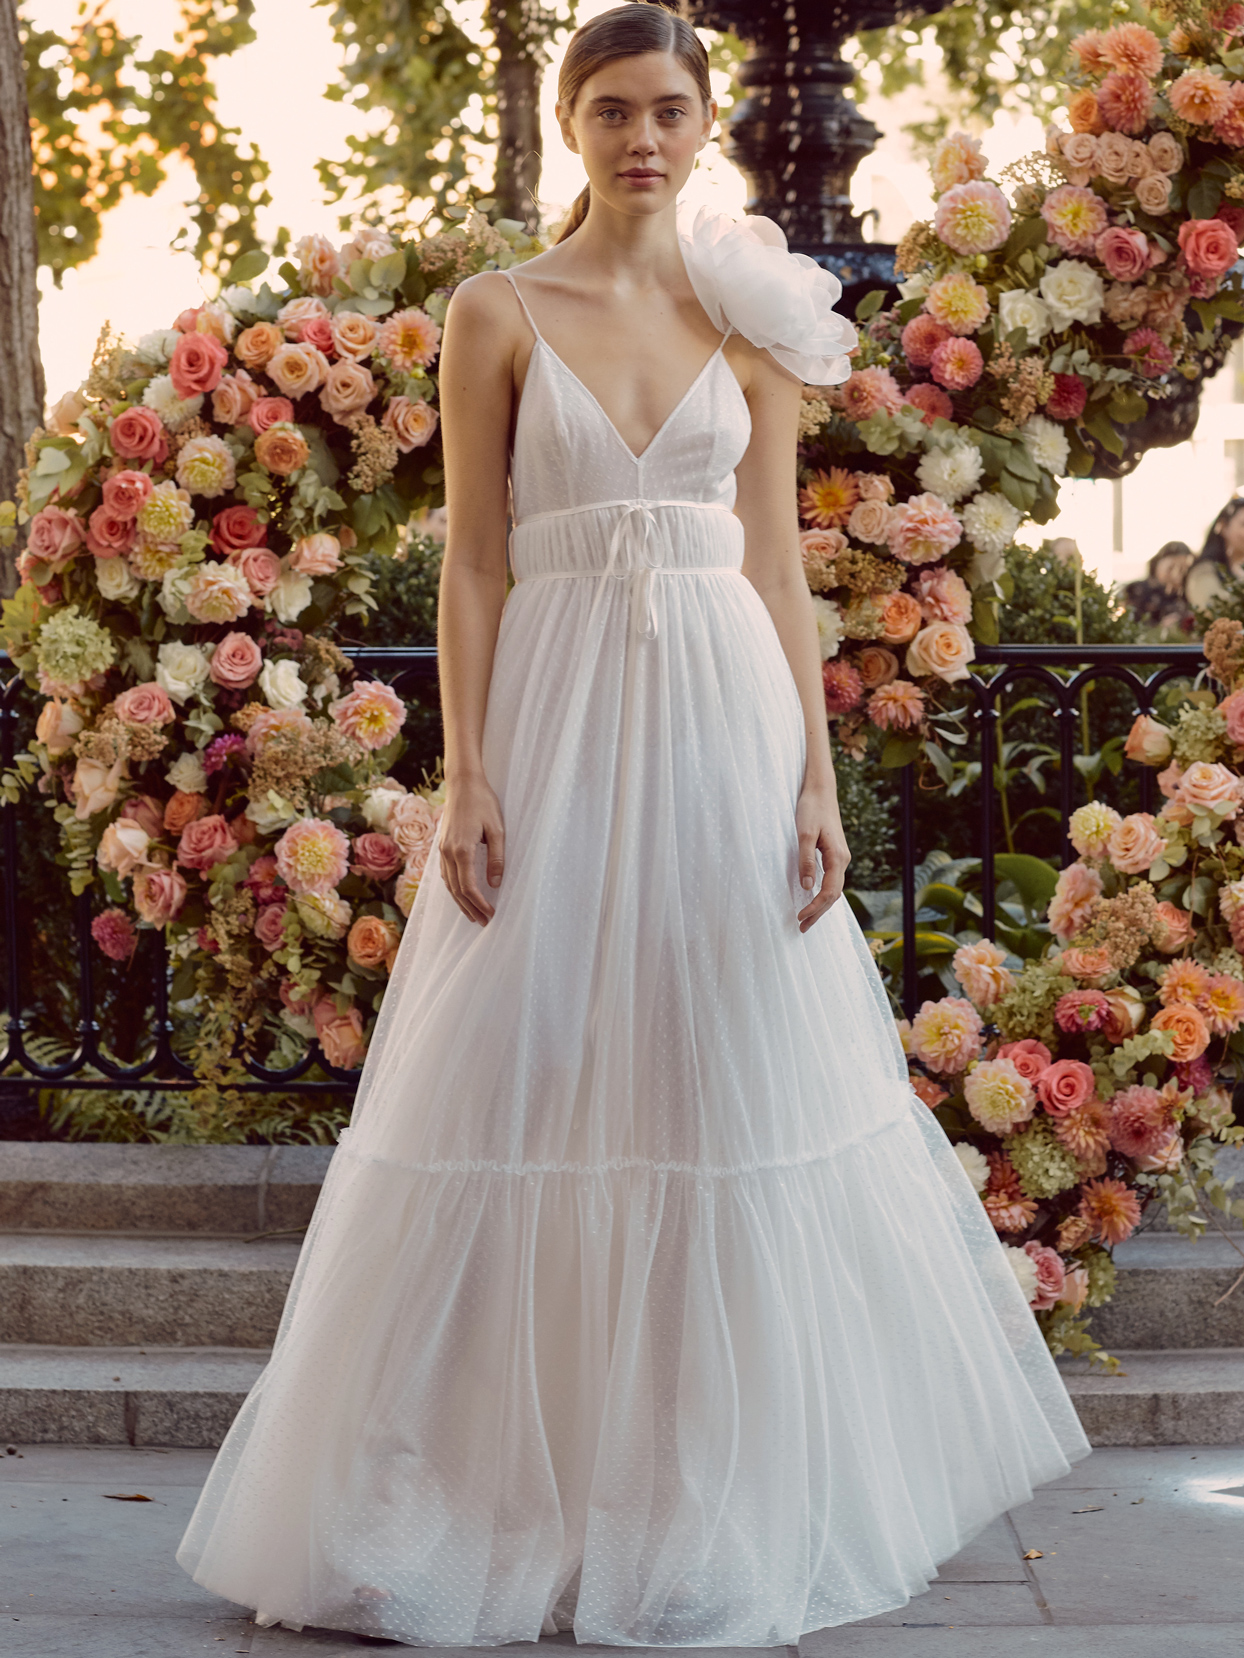 lela rose sheer spaghetti strap v-neck wedding dress with 3D floral detail fall 2020